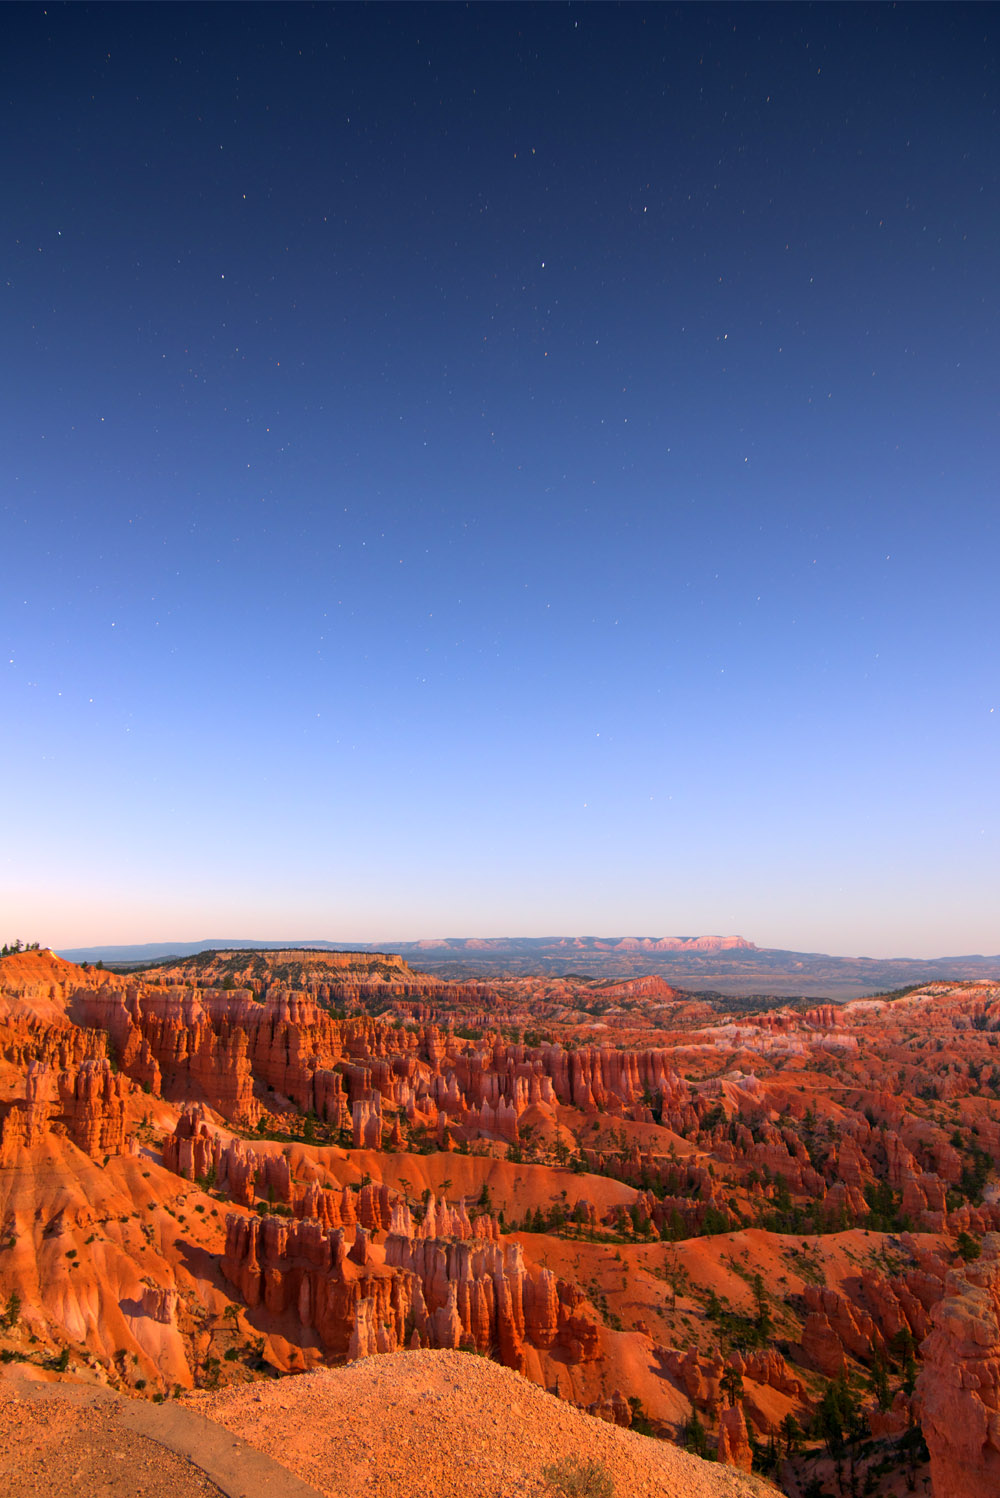 Stars become visible over Bryce Canyon © Robert Lowdon